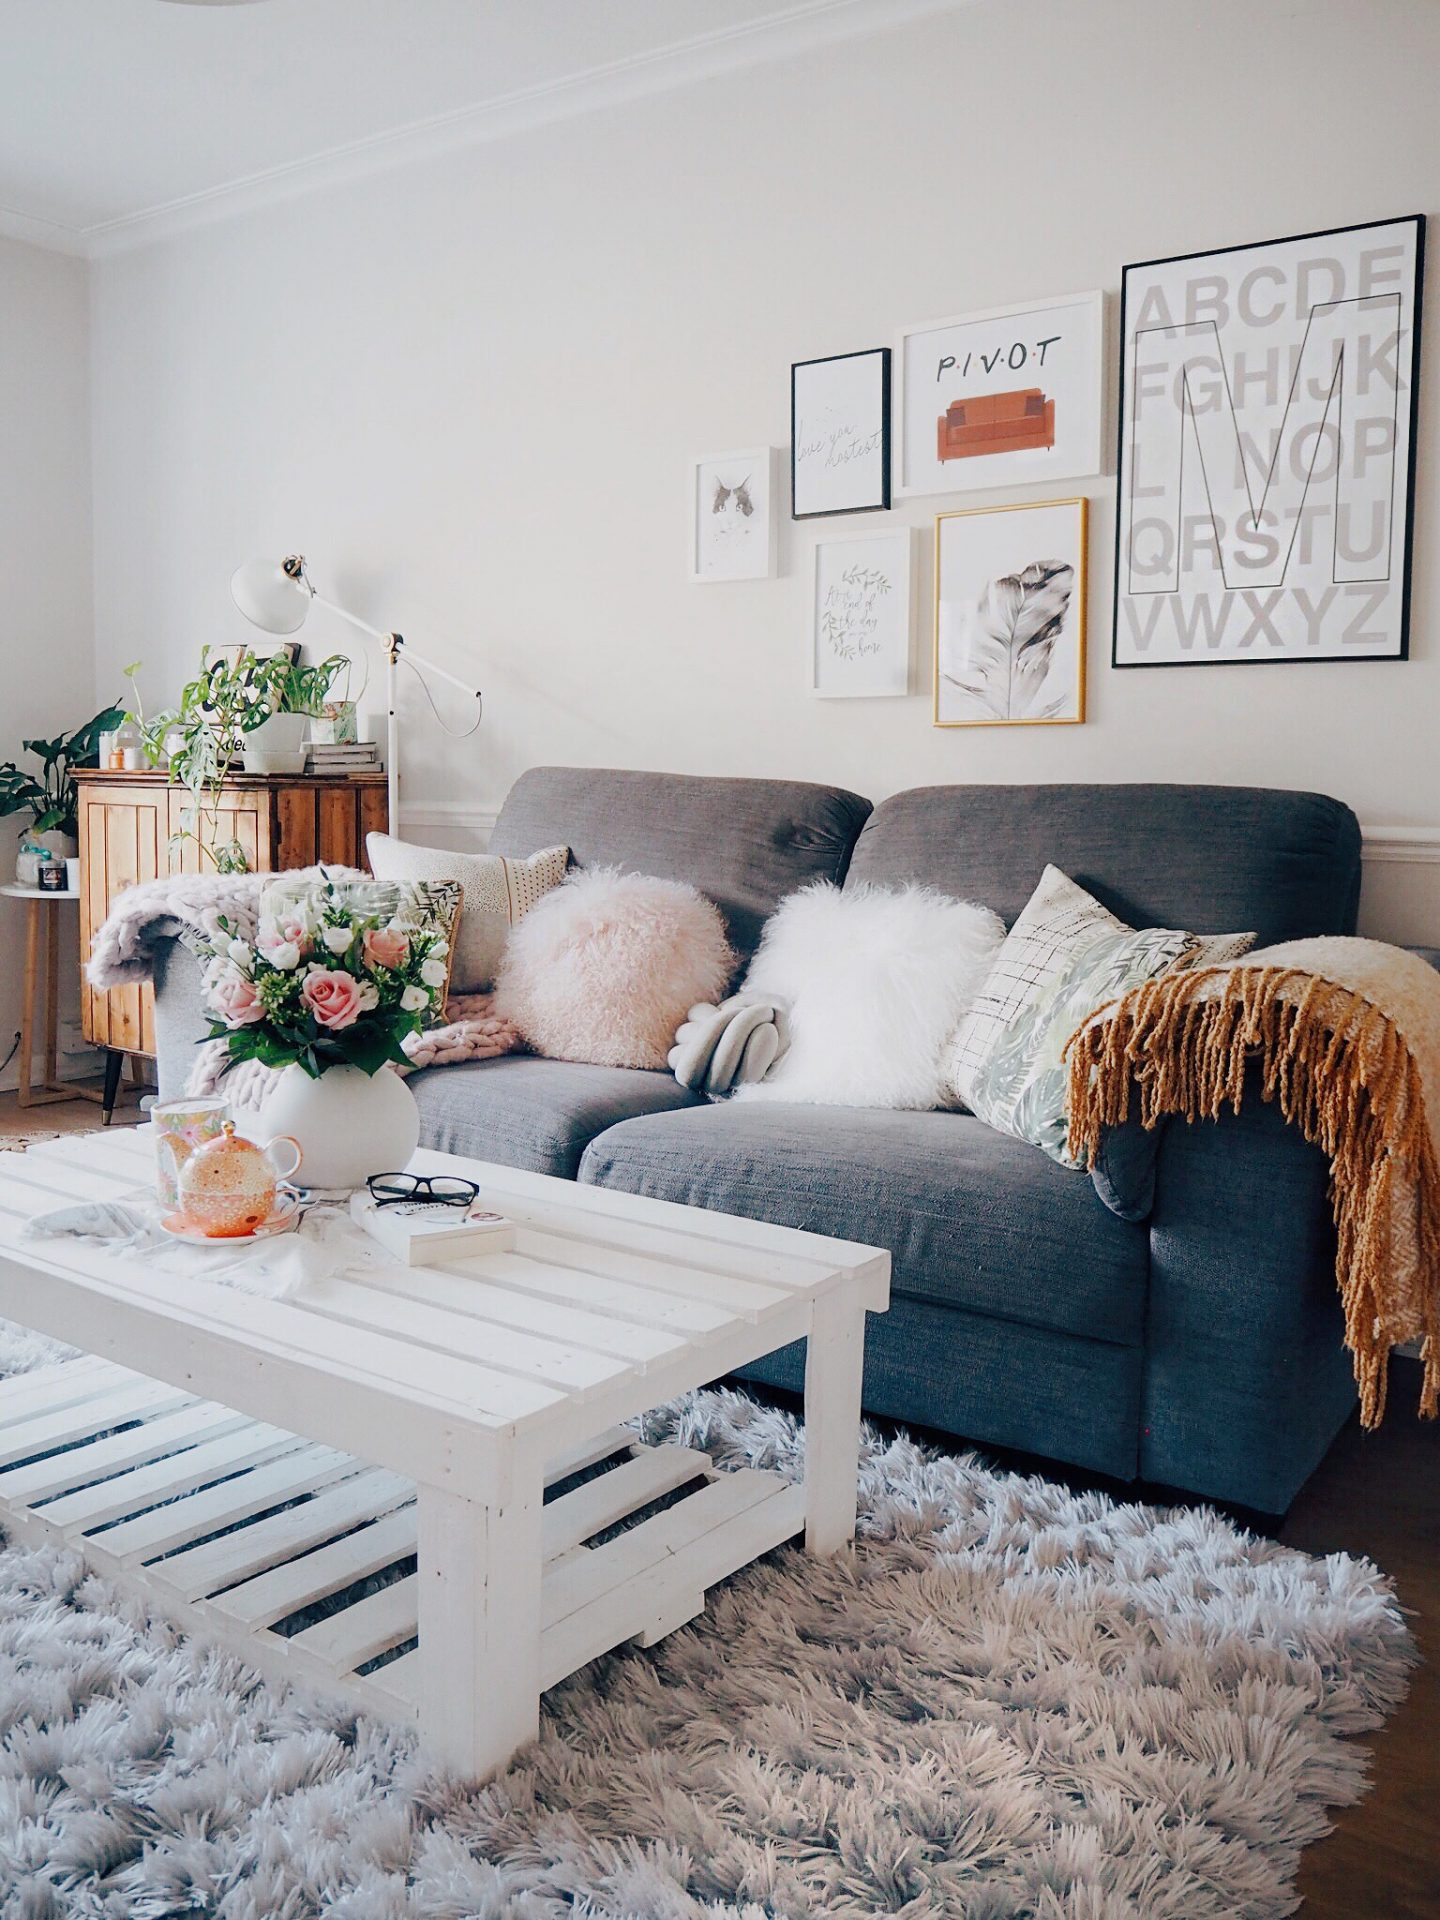 Five Lessons I've Learnt From Decorating My First Home